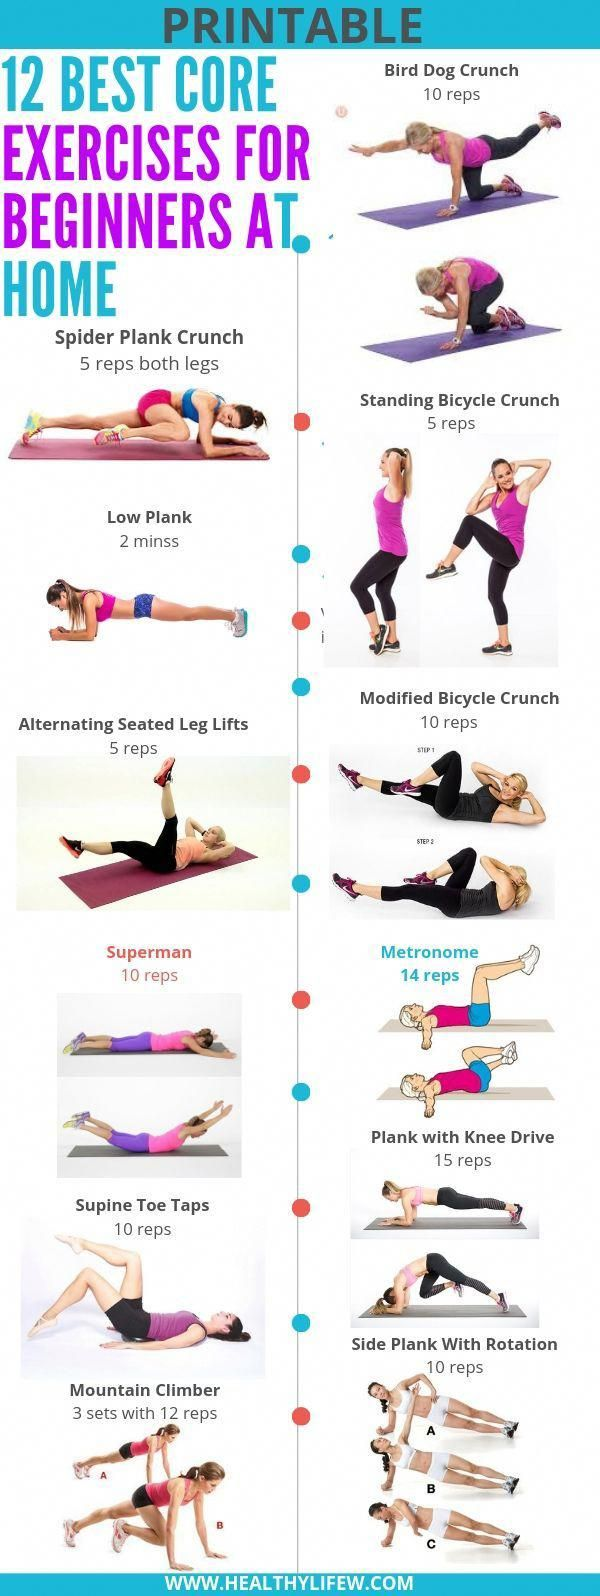 These 12 Best Core Exercises For Beginners At Home Are Good Workouts For A Beginner As Best Core Workouts Core Exercises For Beginners Beginner Workout At Home